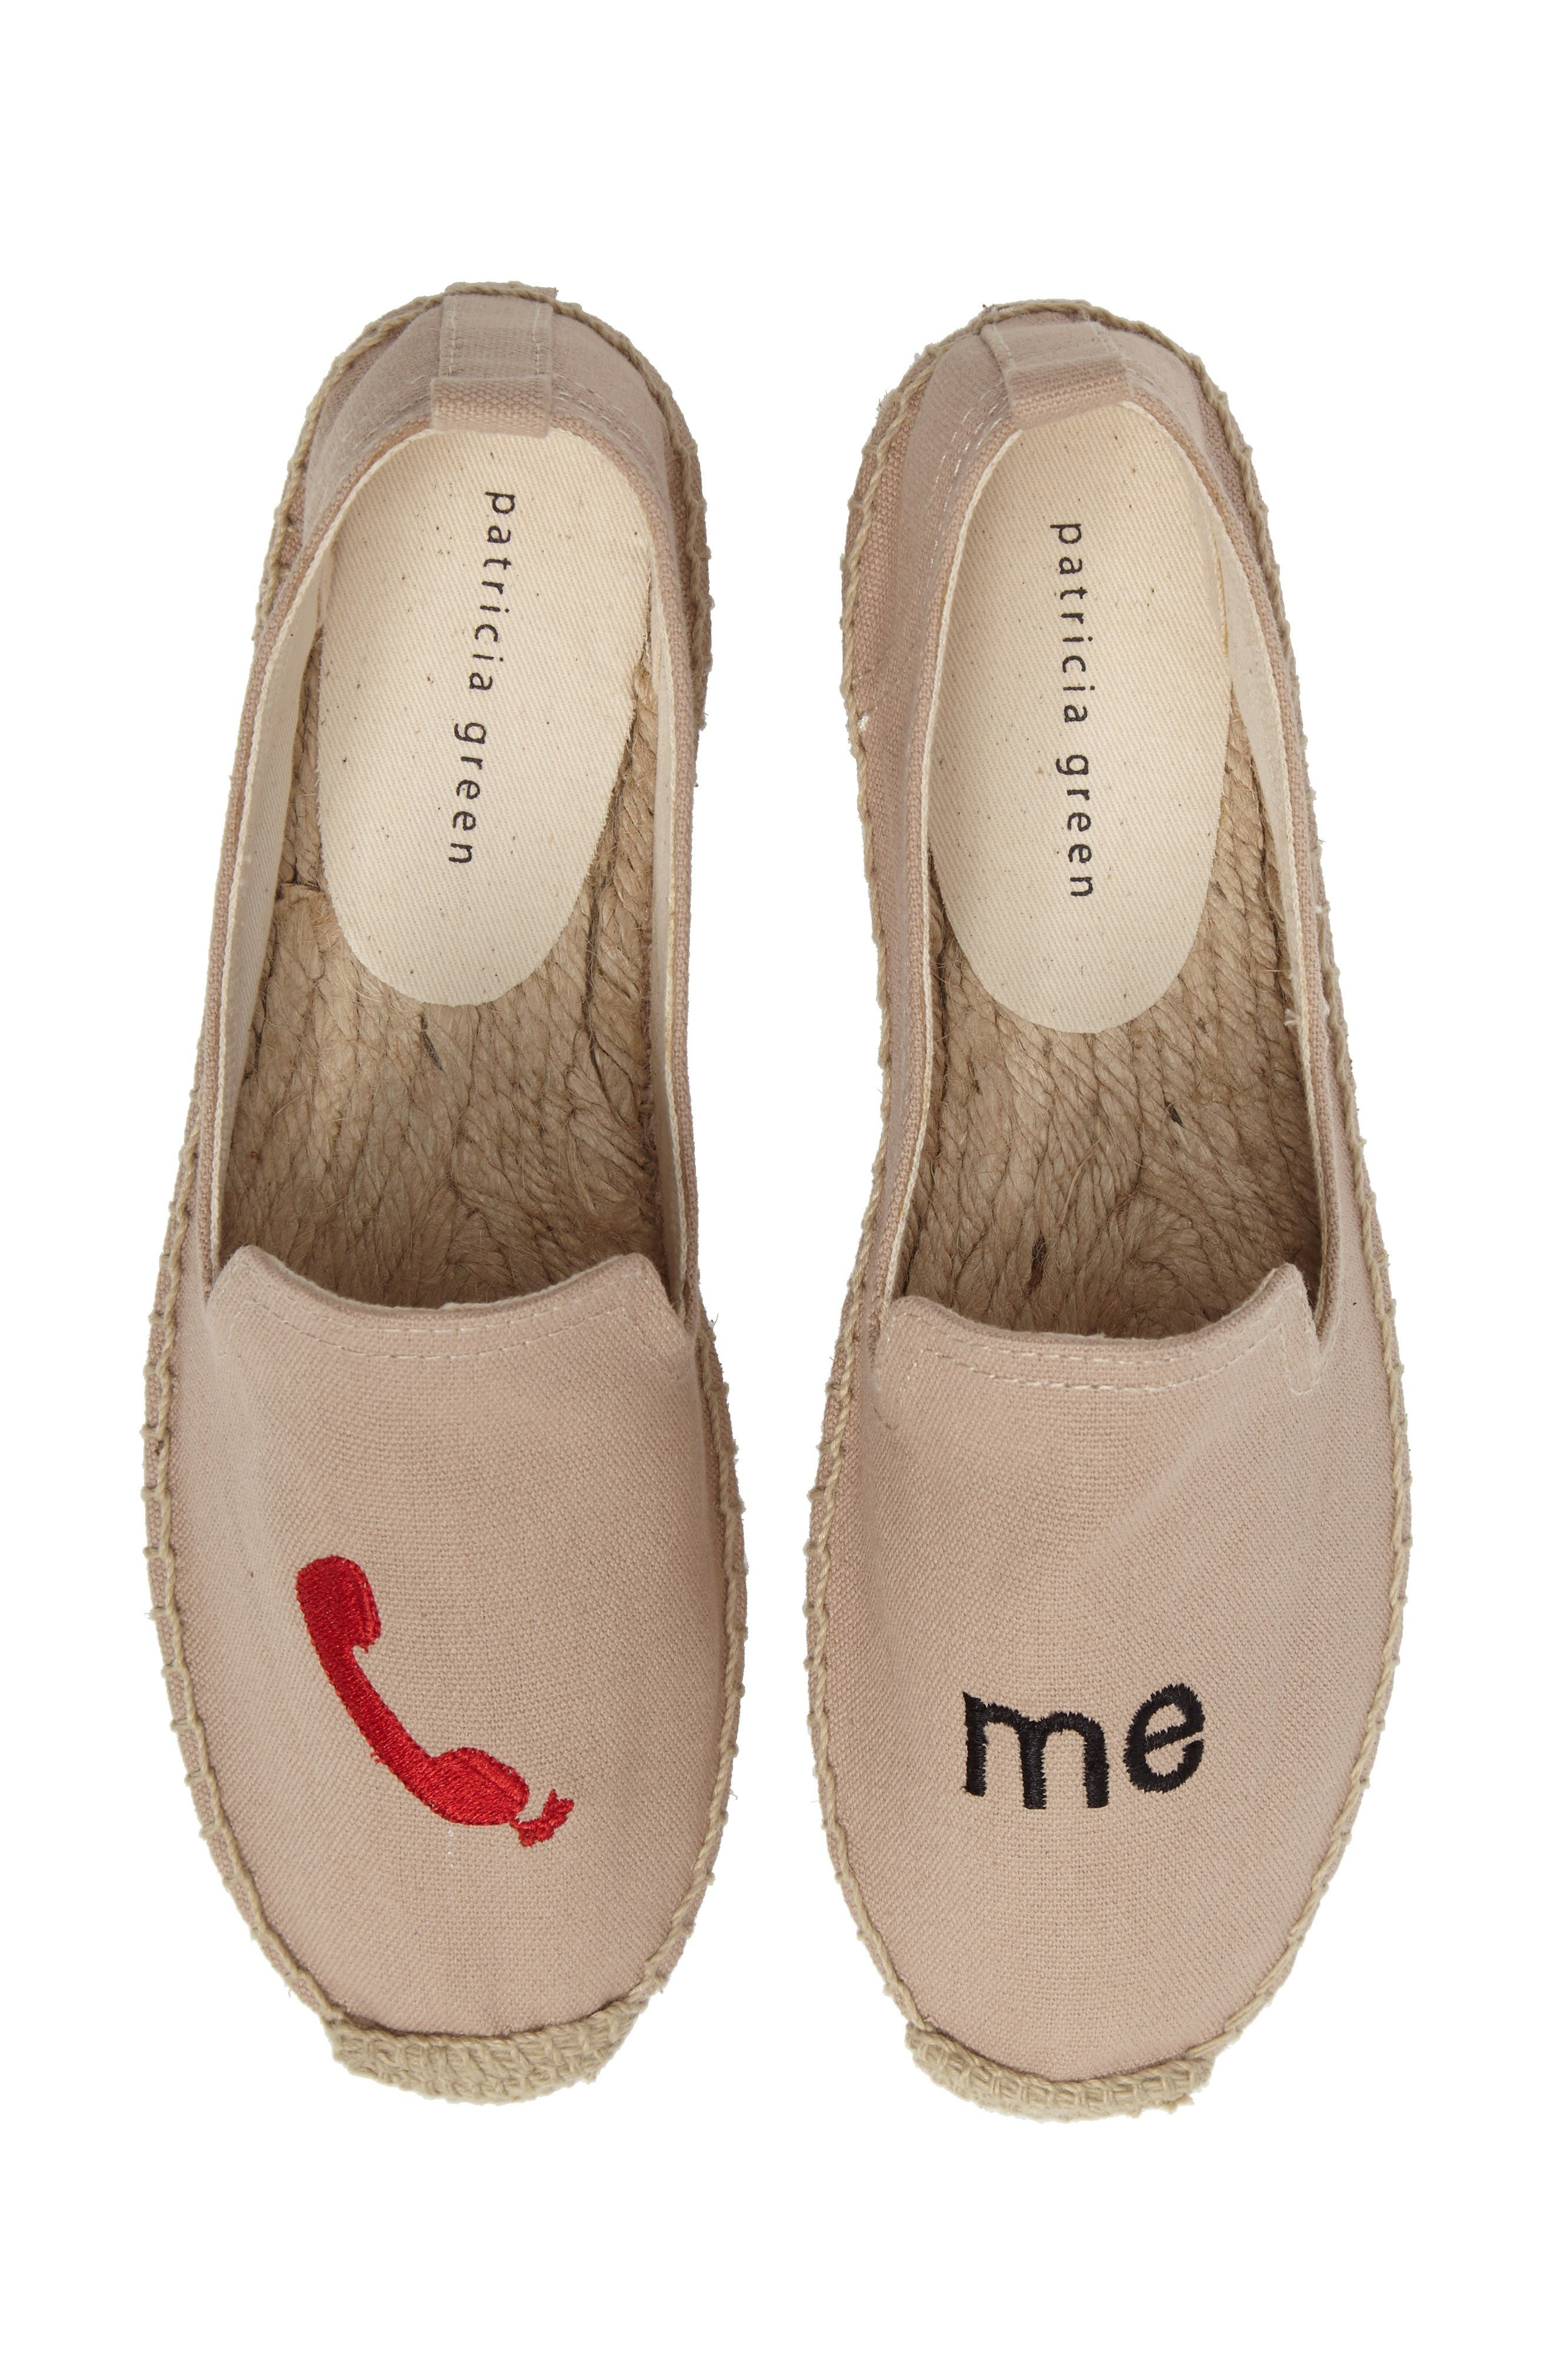 Alternate Image 1 Selected - patricia green Call Me Espadrille Flat (Women)